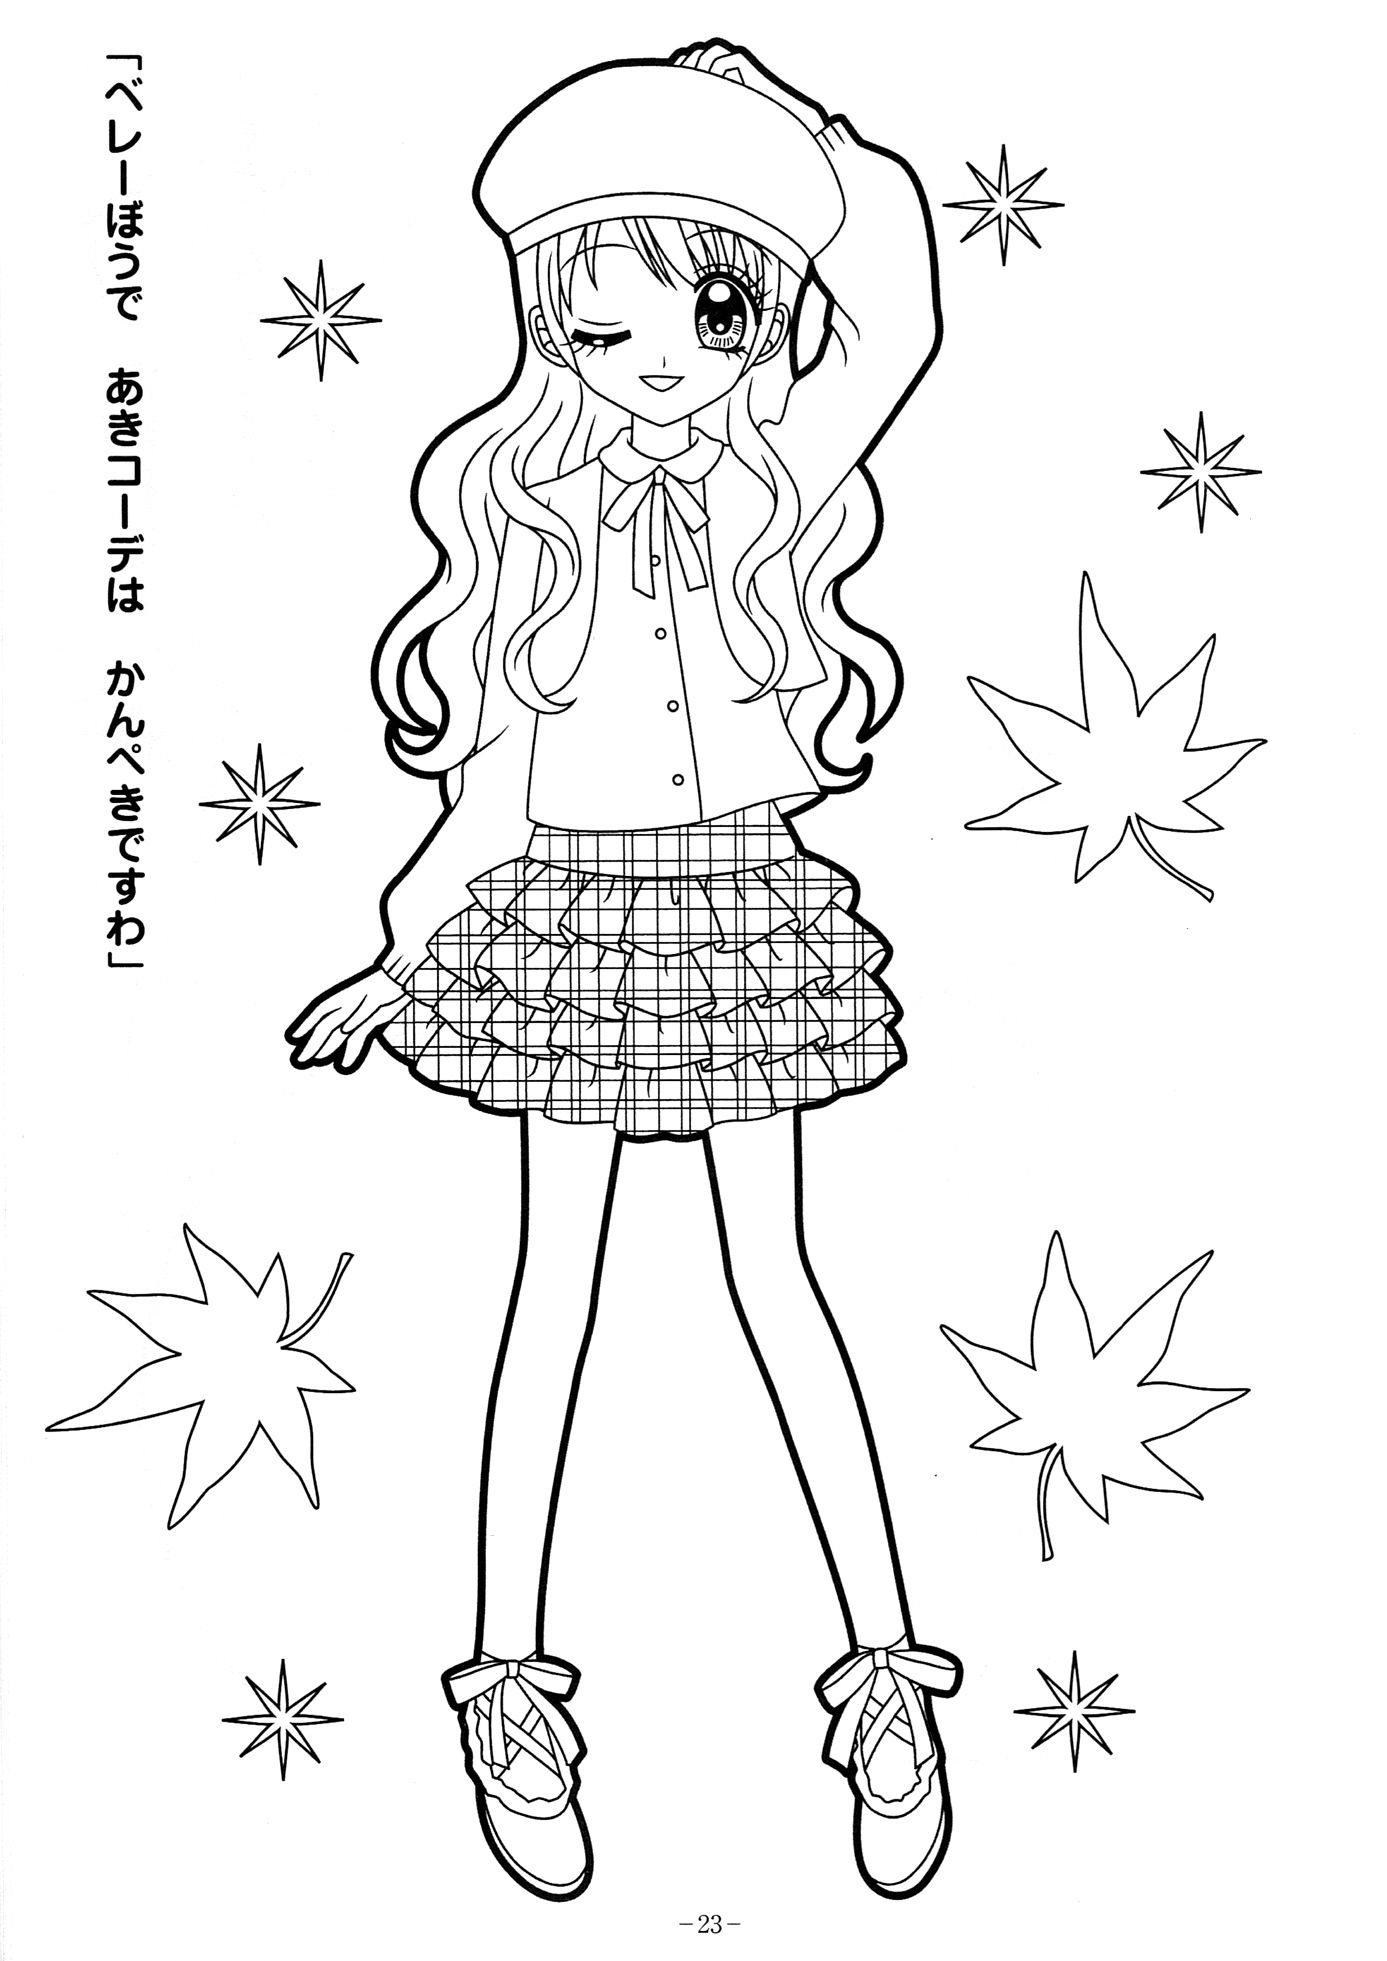 Anime Colouring Pages For Kids To Print Mermaid Coloring Pages Coloring Pages For Girls Cute Coloring Pages